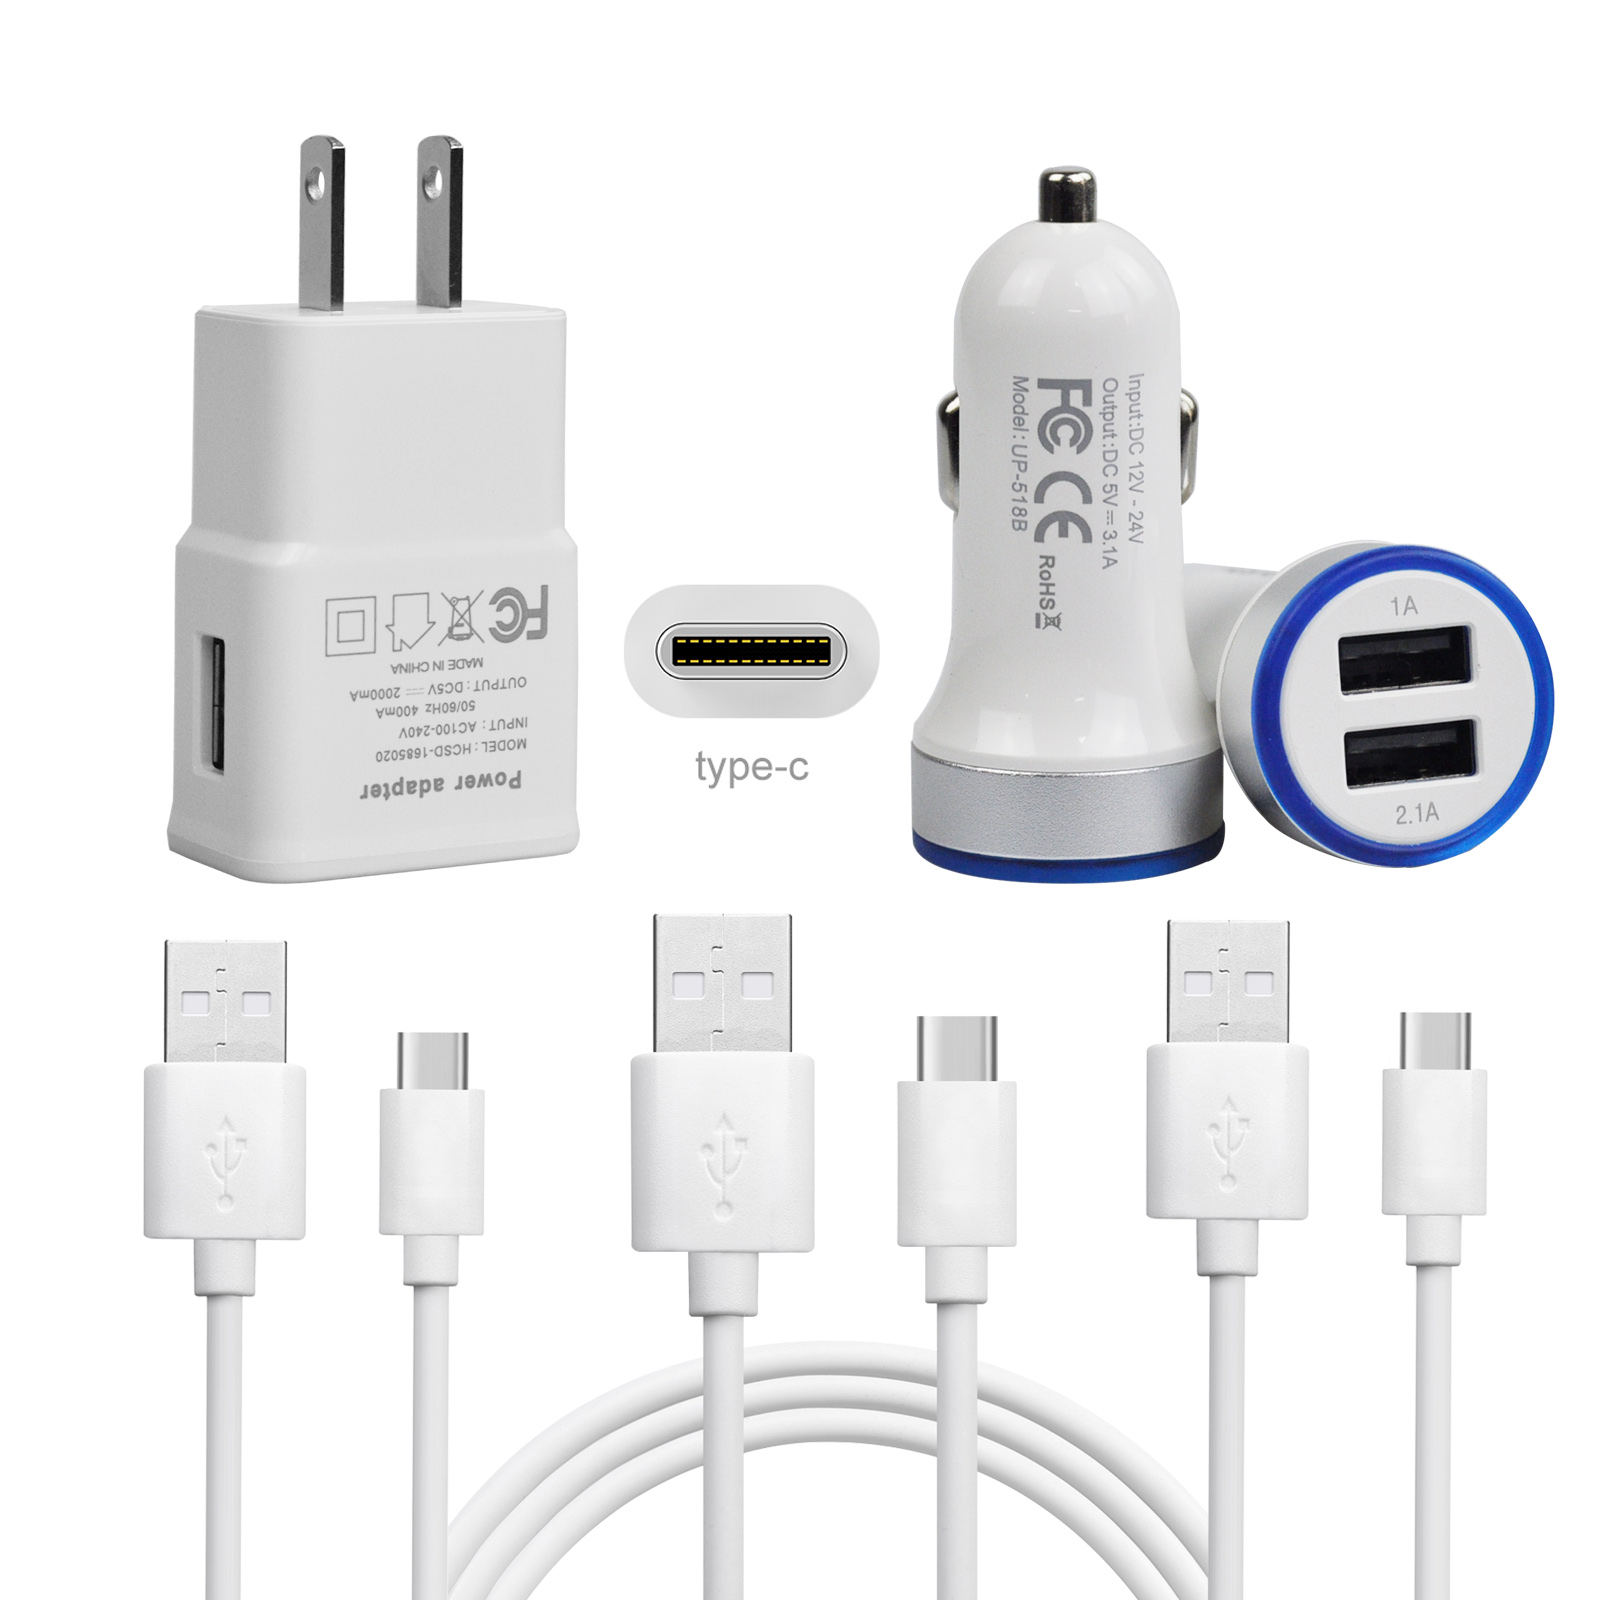 Usb C 2m 6ft Cable Wall Fast Car Charger For Google Pixel 2 Xl Lg Eternity Ultra Port Charging Stylo 4 V30 20